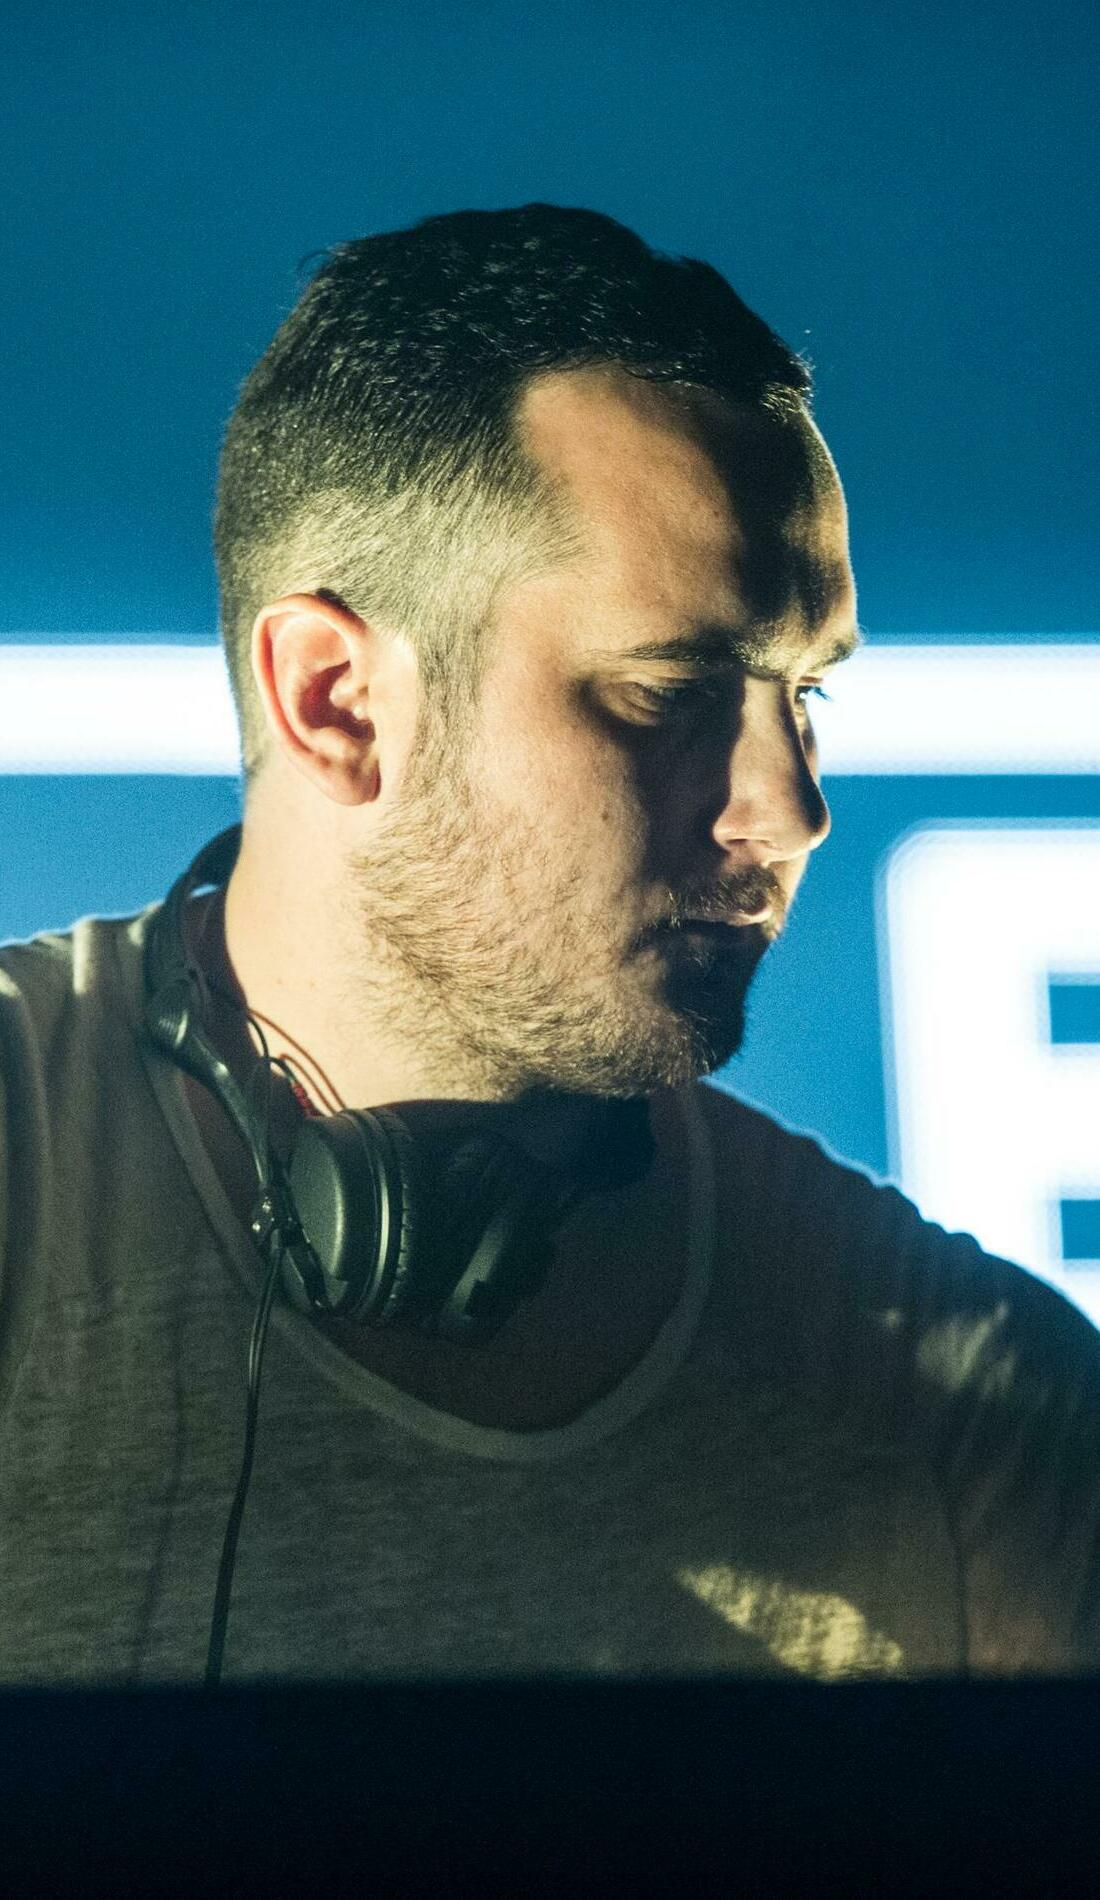 A Andrew Bayer live event